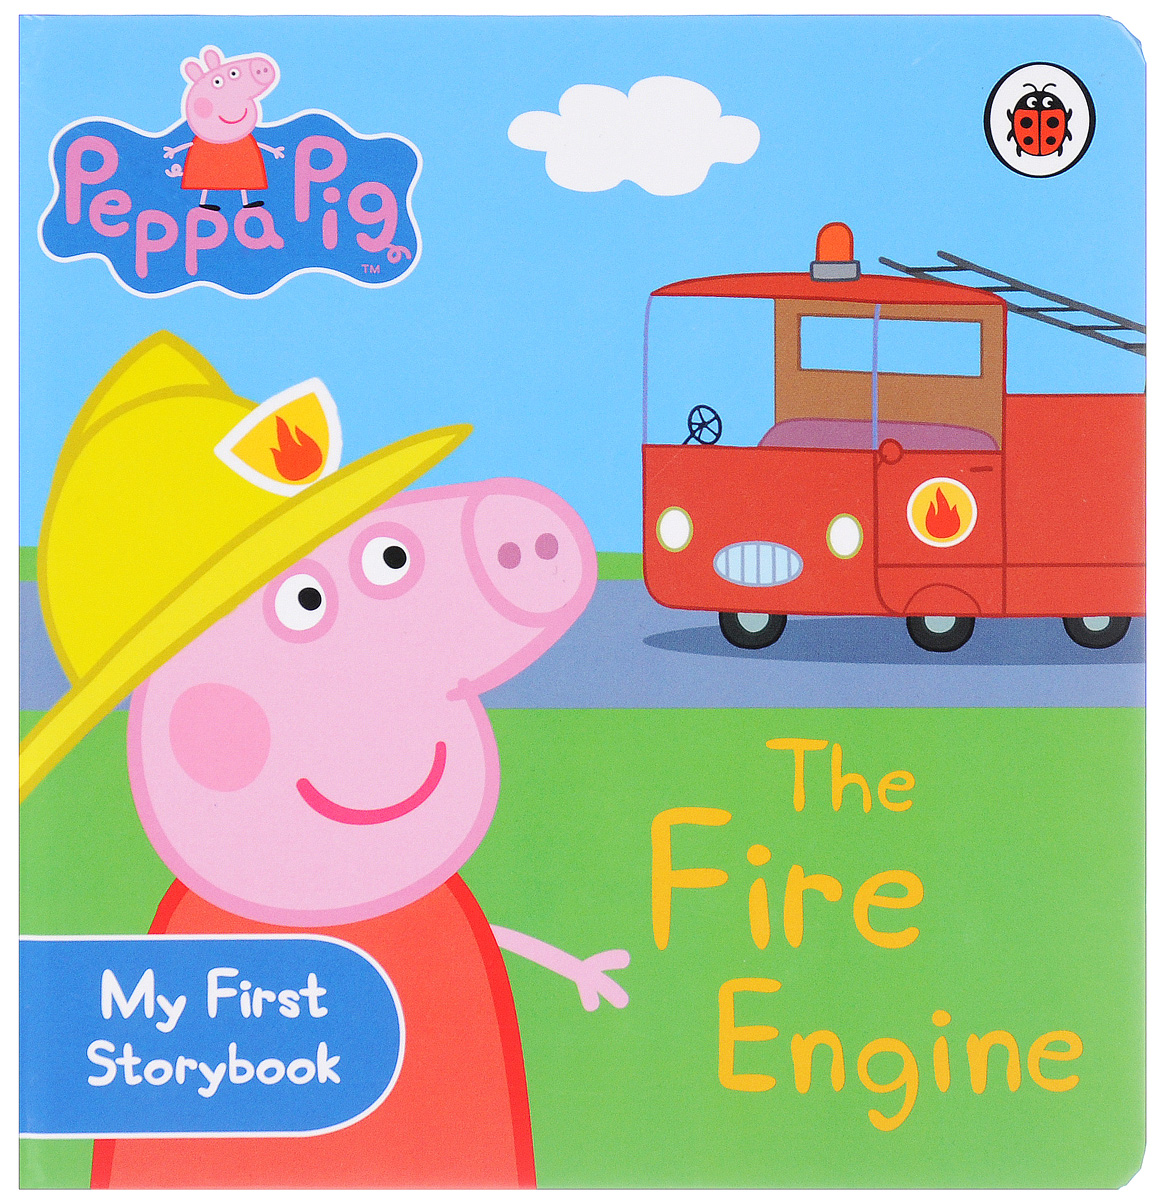 Peppa Pig: The Fire Engine: My First Storybook peppa pig 1000 first words sticker book